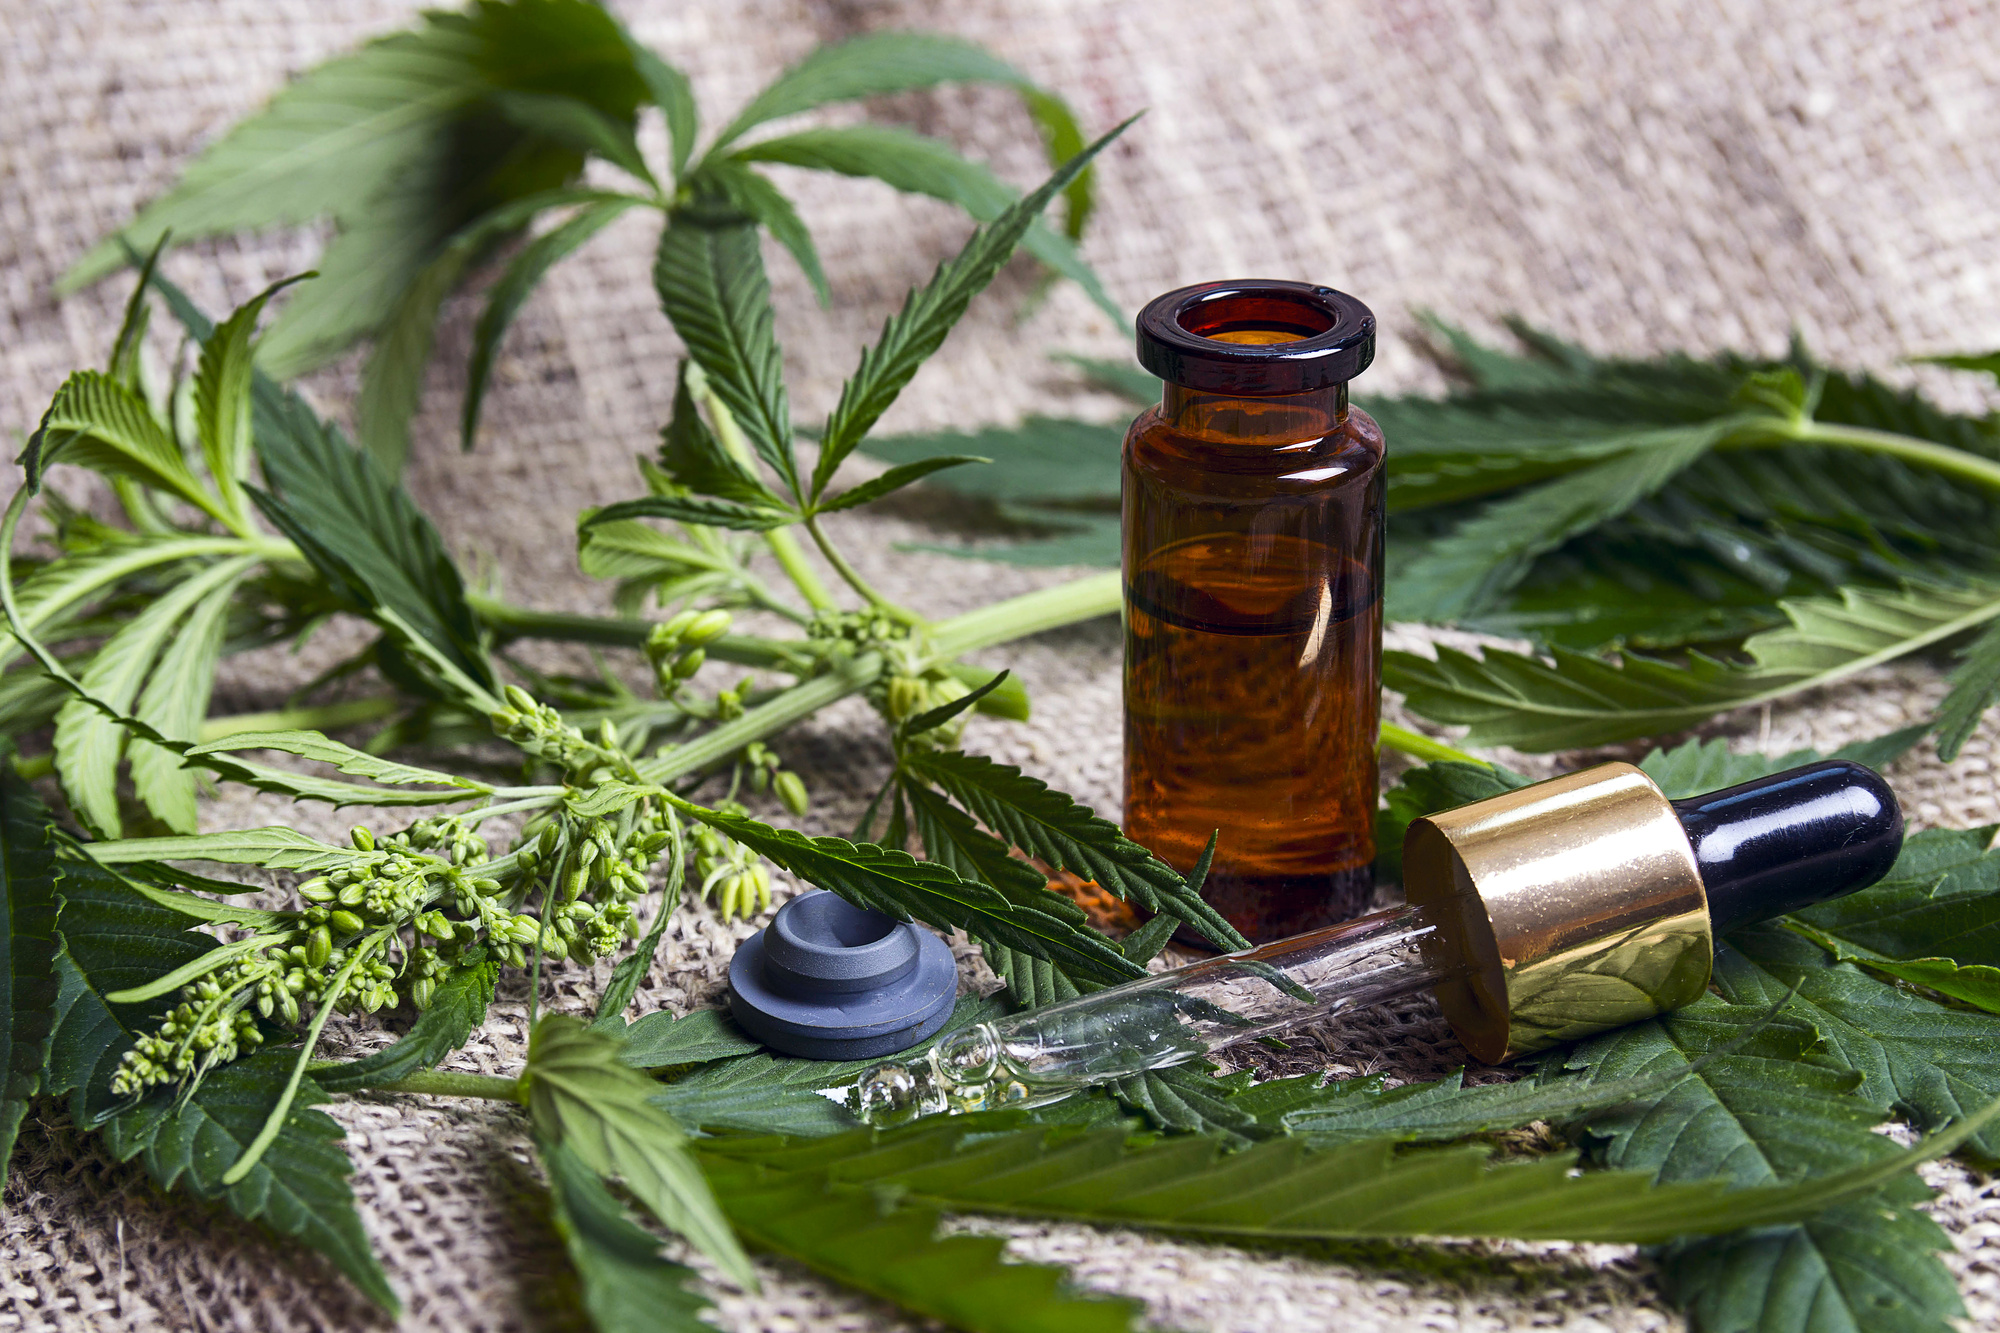 Finding What Works for You: What to Look for When Buying CBD Oil